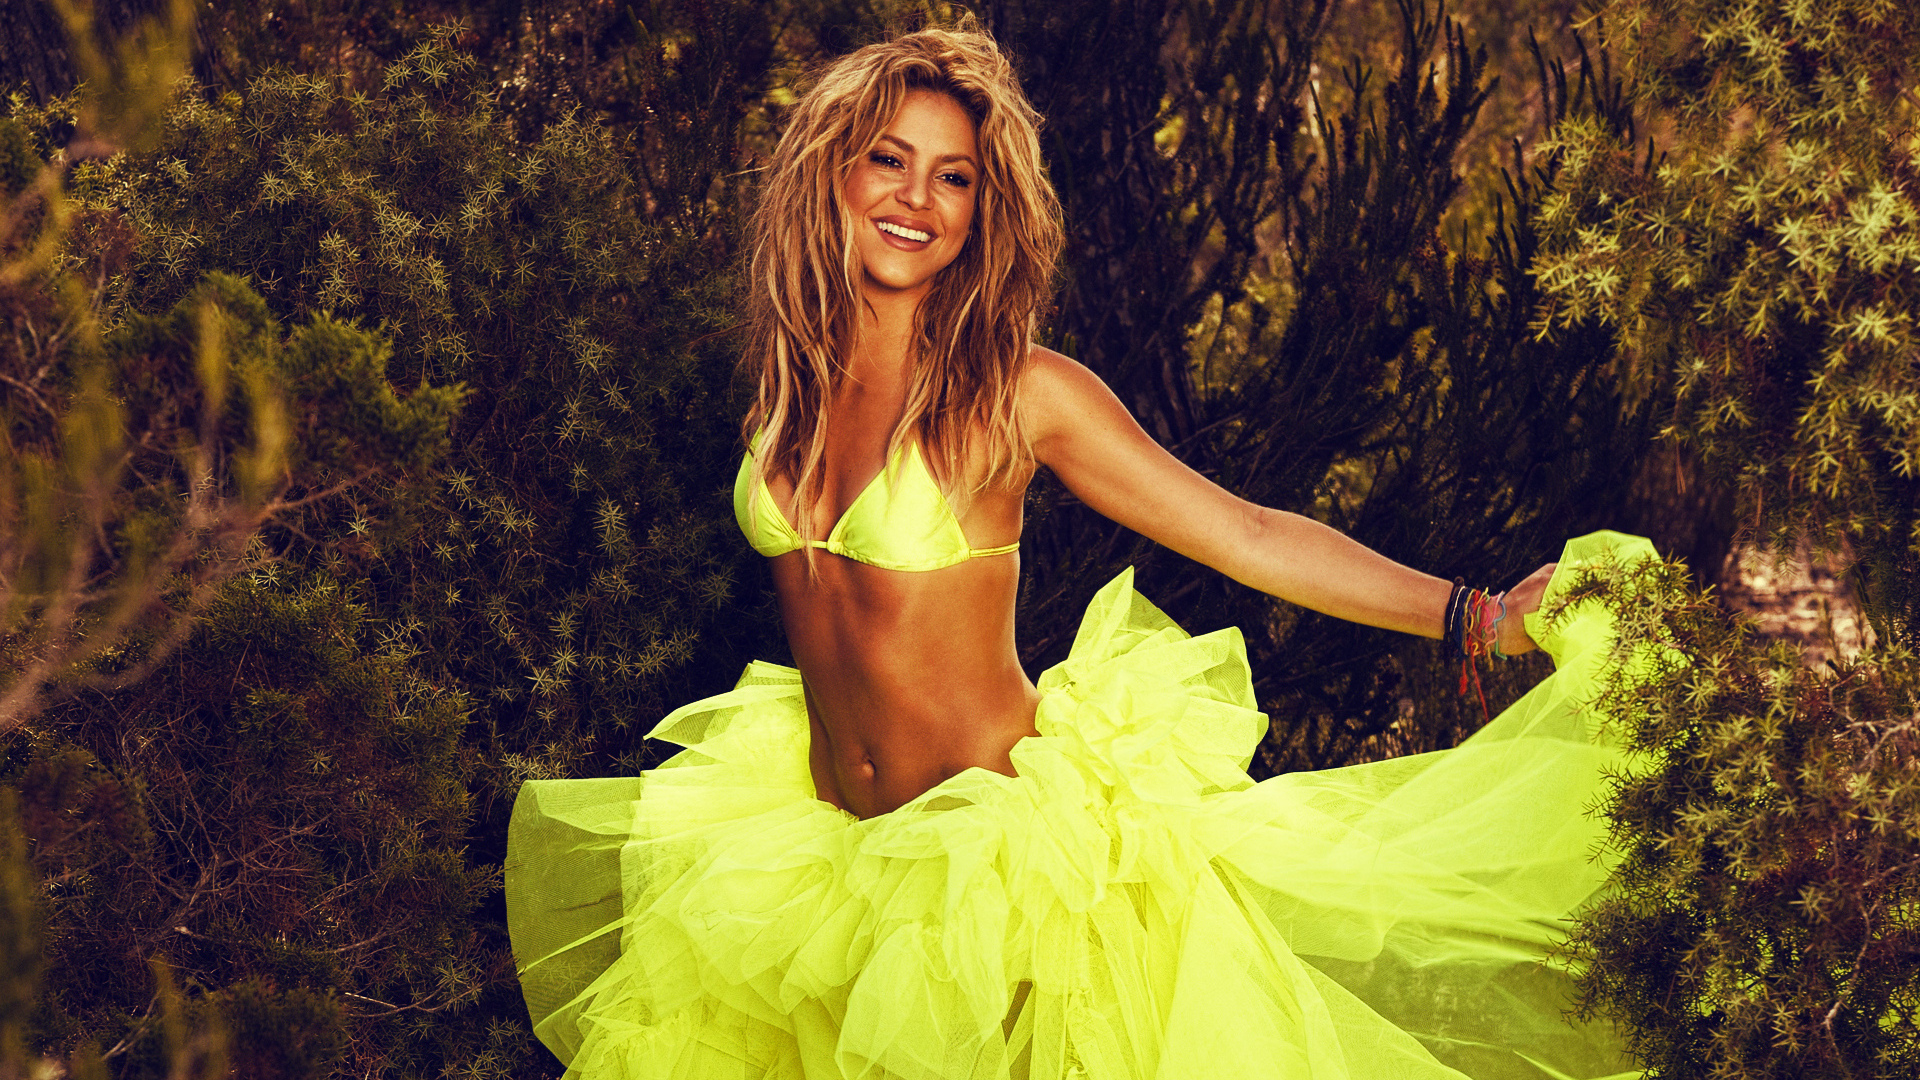 singer, colombia, green, latin, yellow, shakira, nature, music, colombian